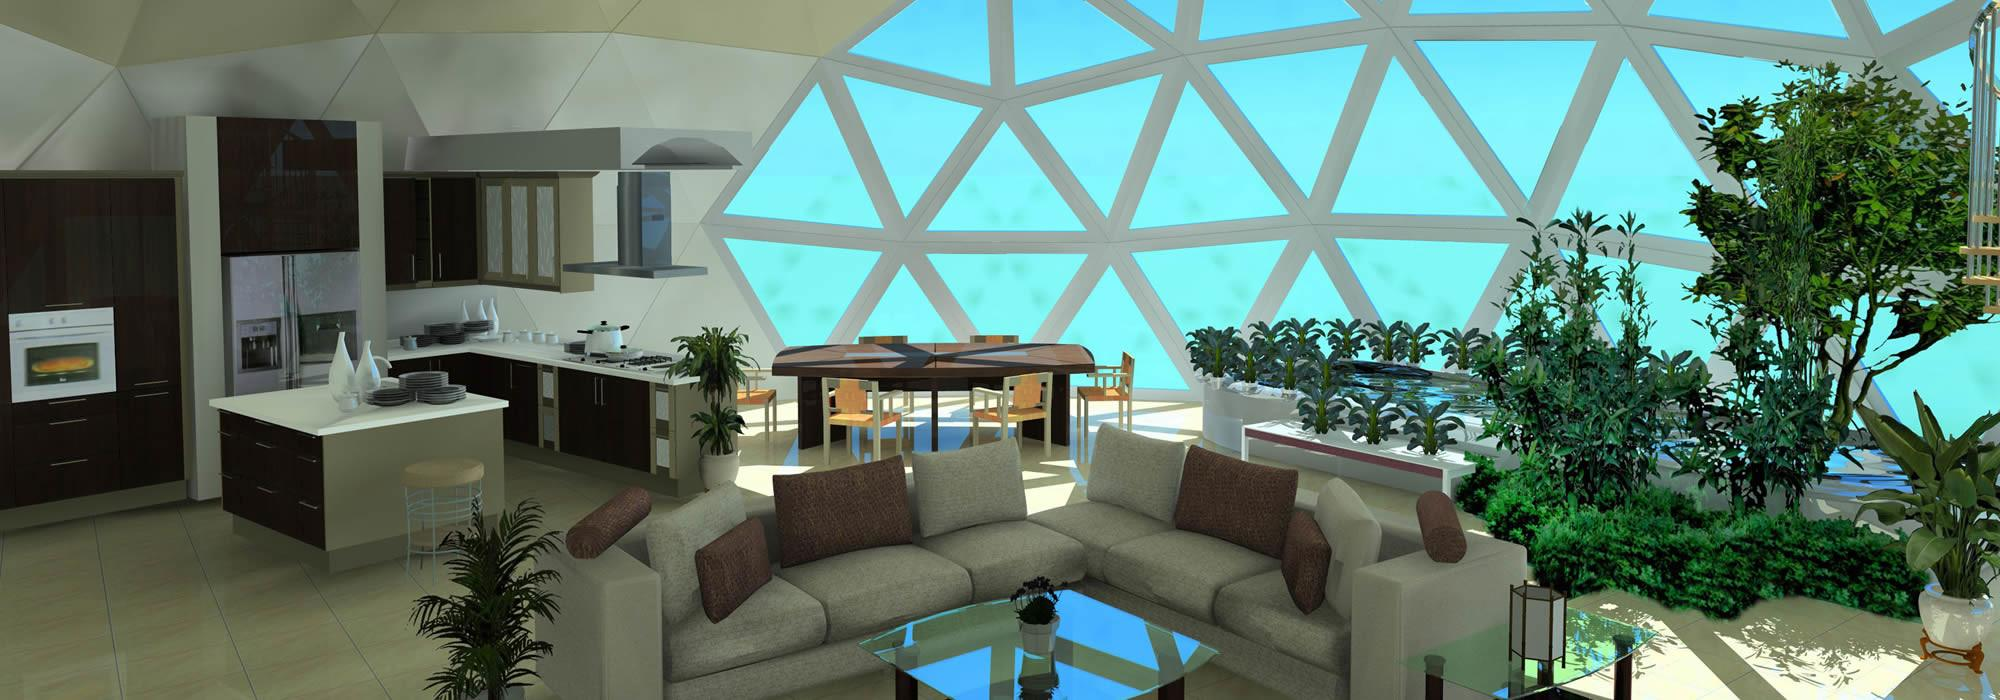 Benefits Geodesic Dome Homes